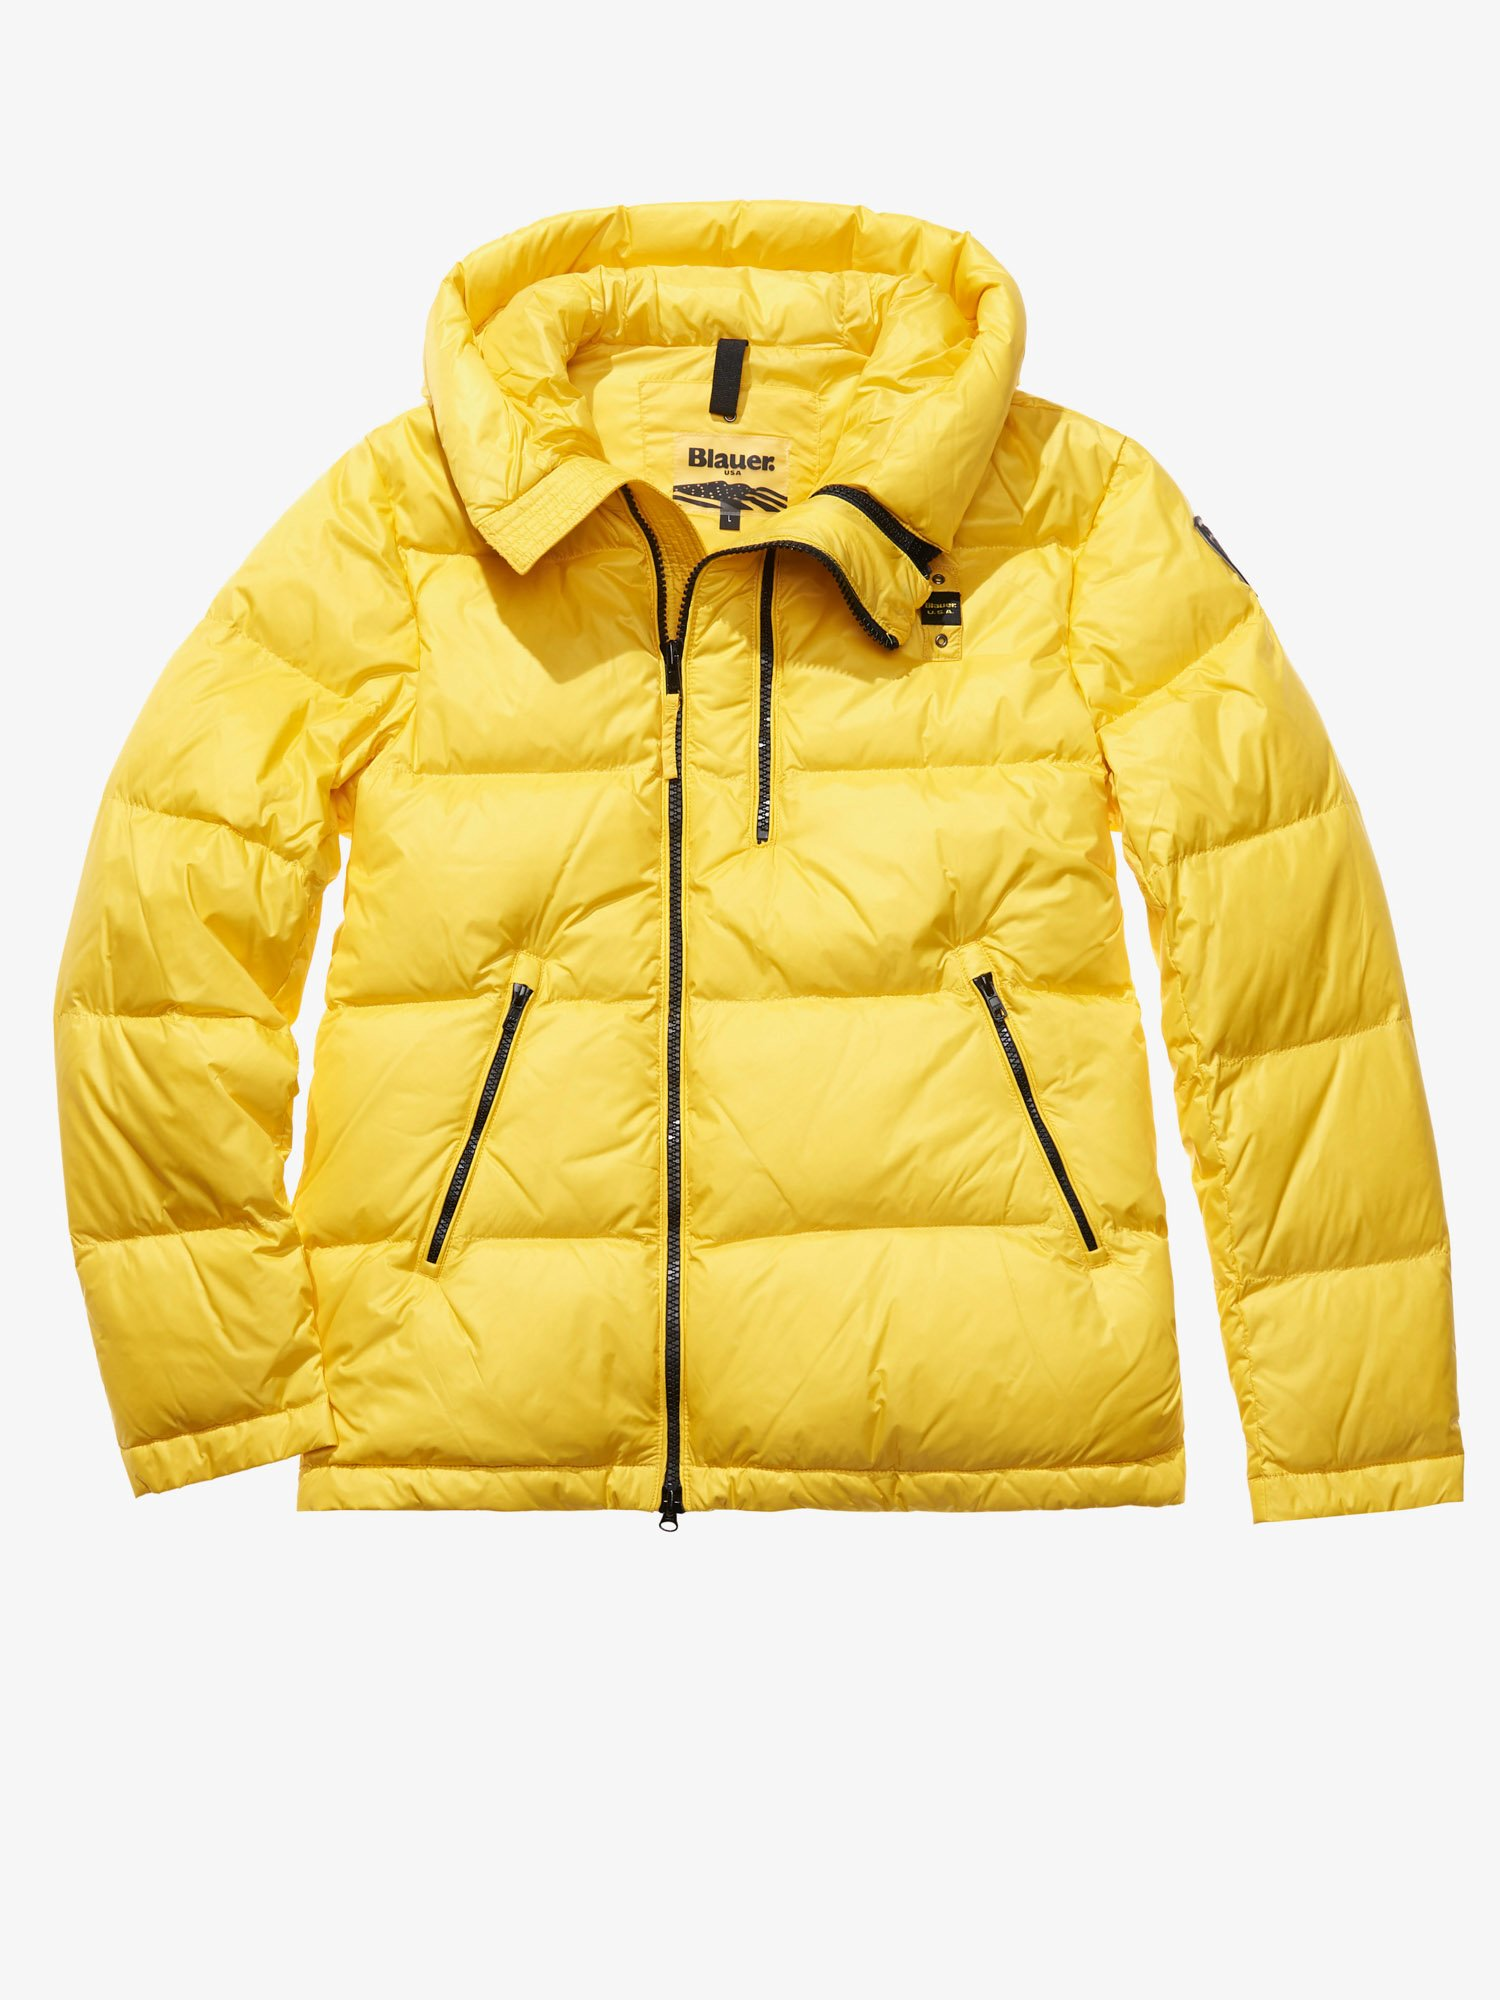 Blauer - GIACOMO MATTE DOWN JACKET WITH ASYMMETRIC ZIP - Acid Yellow - Blauer